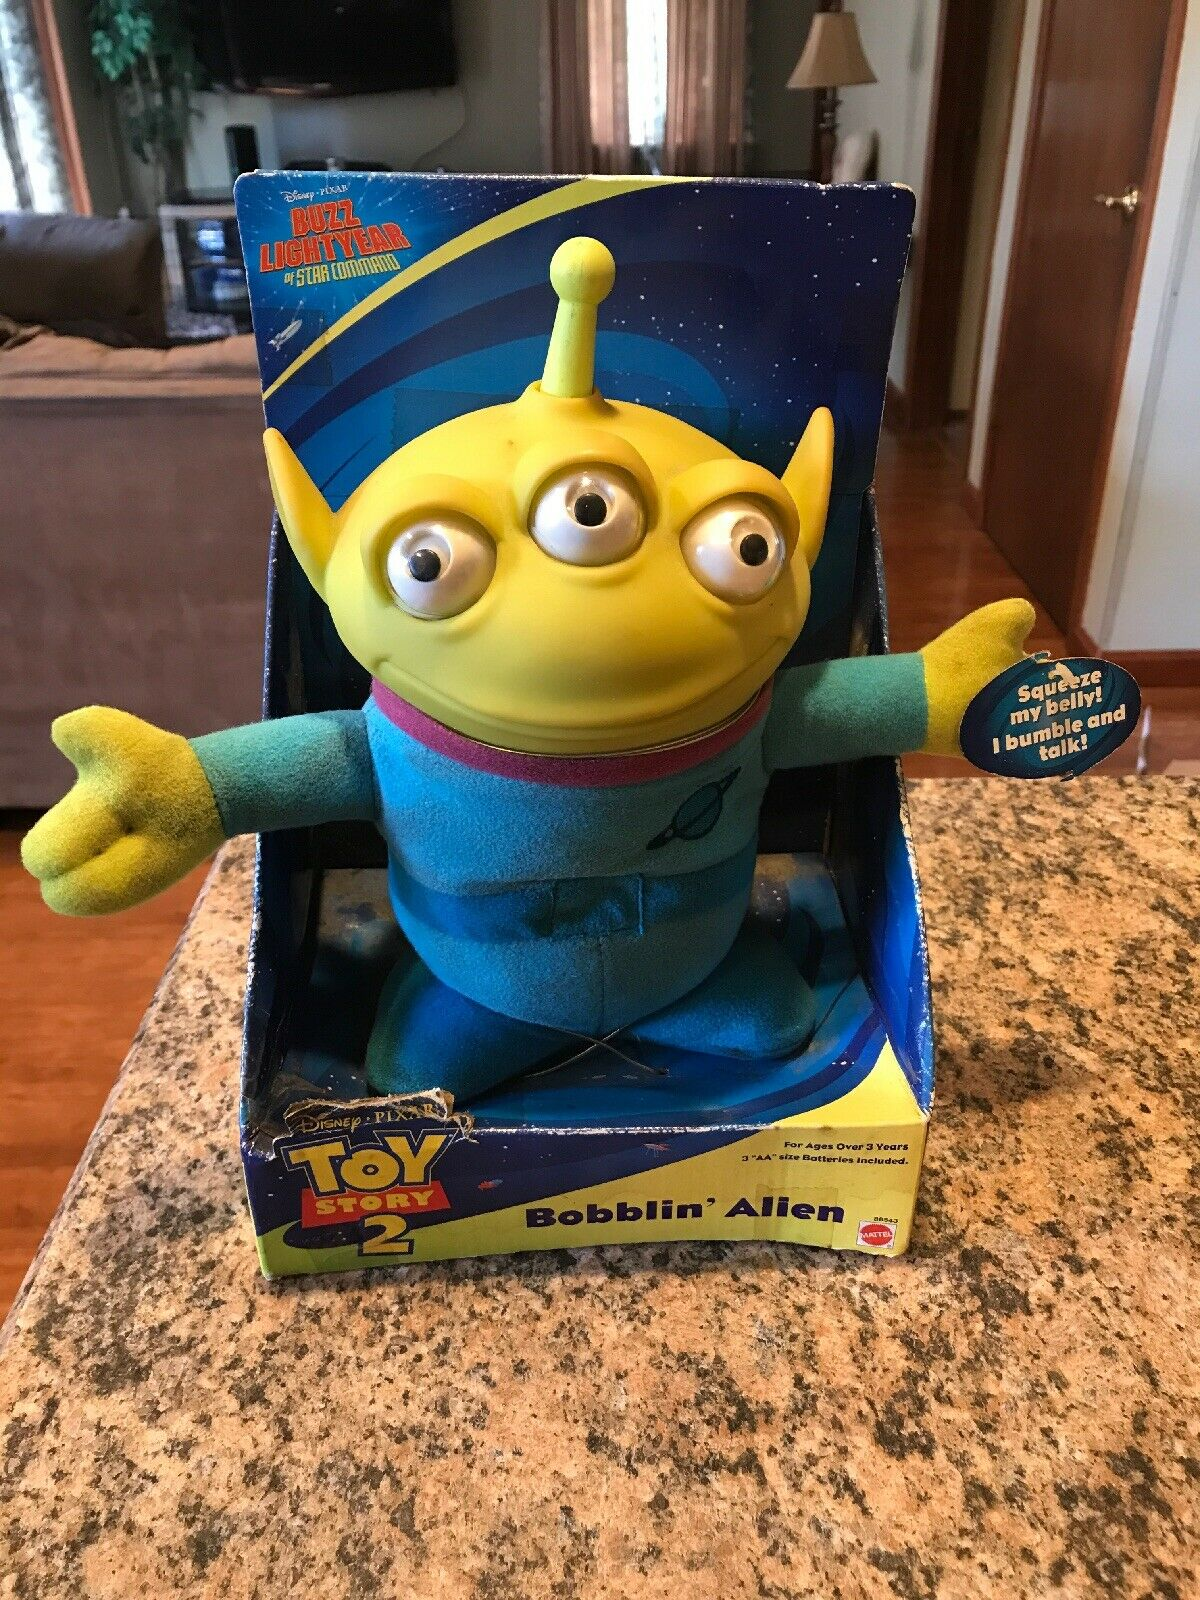 Toy Story Toys Vintage Vintage 2000 Toy Story 2 Mattel Bobblin Alien Squeeze Belly Bumble Talk New